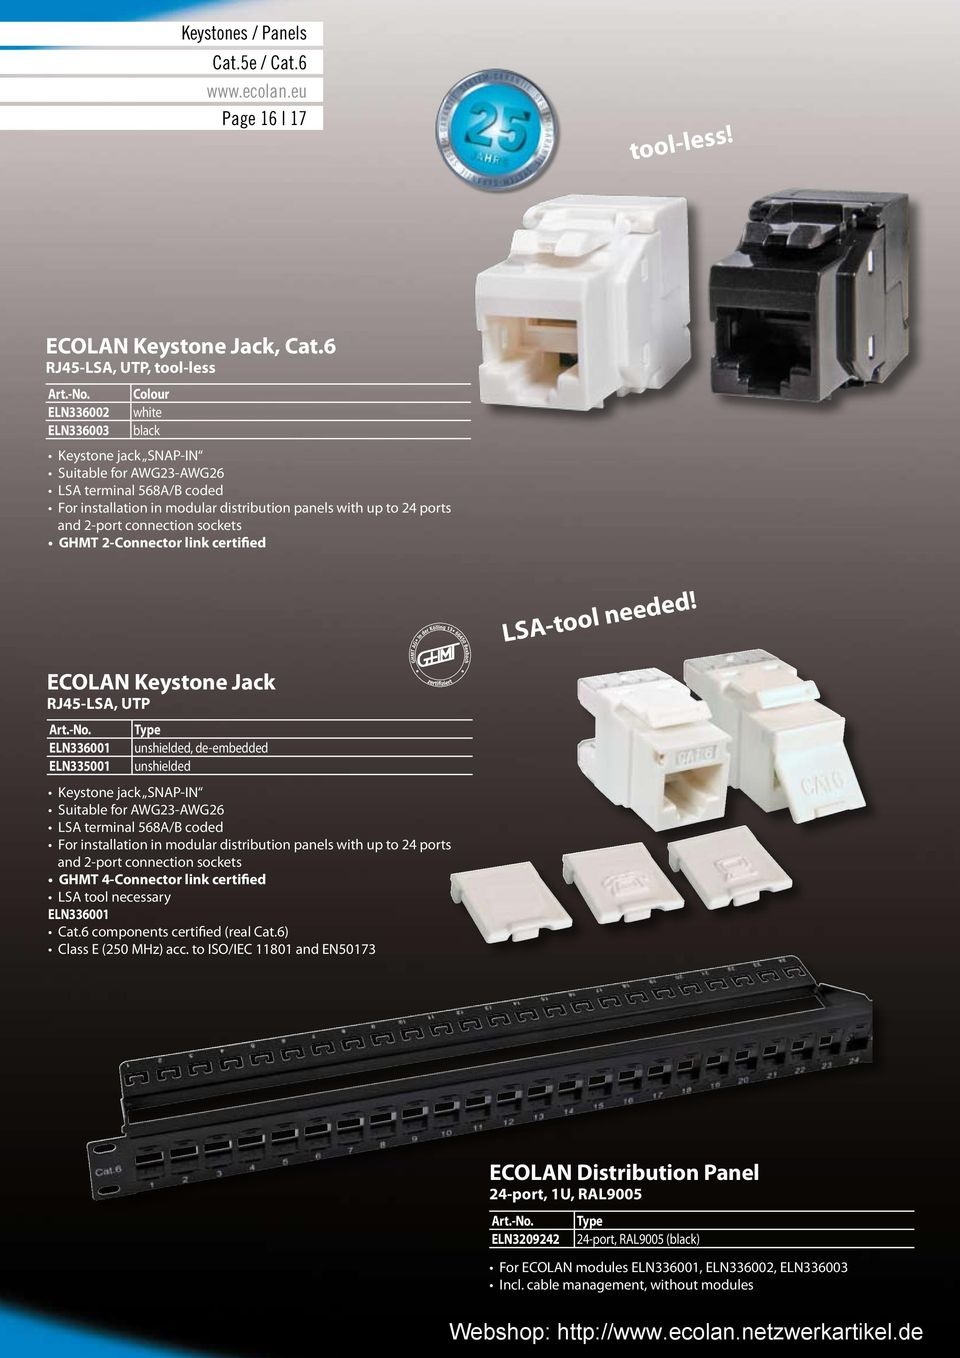 Ecolan Our Promise Your Success Phone 0 Fax Pdf Rj45 Keystone Jack Wiring Diagram On Eia 568b For Cat 6 Jacks 24 Ports And 2 Port Connection Sockets Ghmt Connector Link Certified Lsa